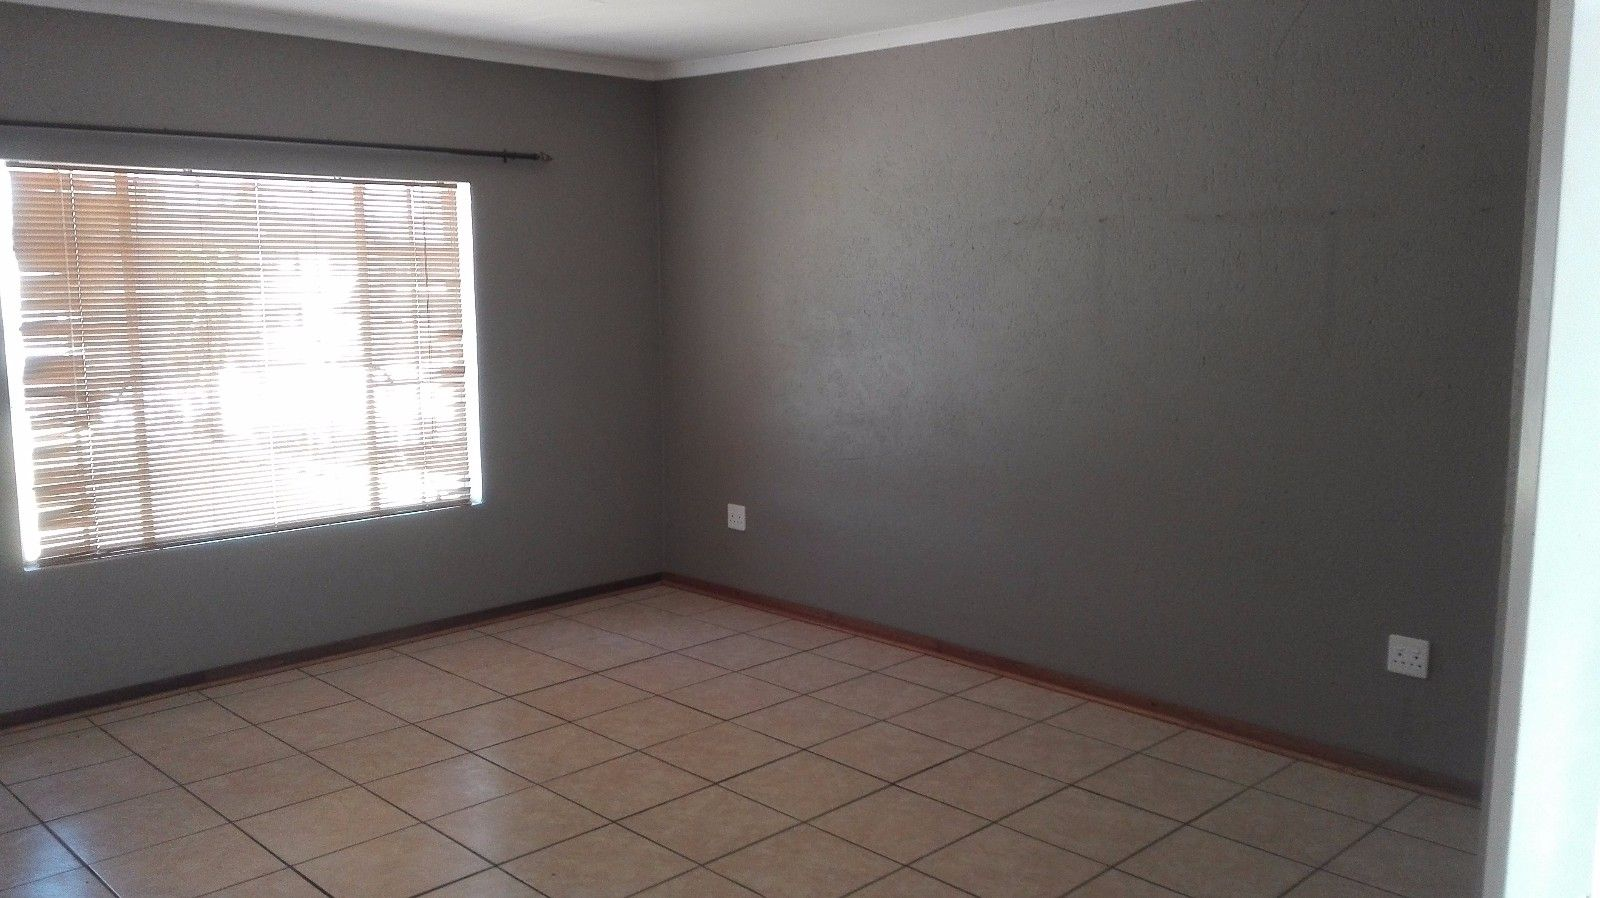 Potchefstroom Central property for sale. Ref No: 13381094. Picture no 6